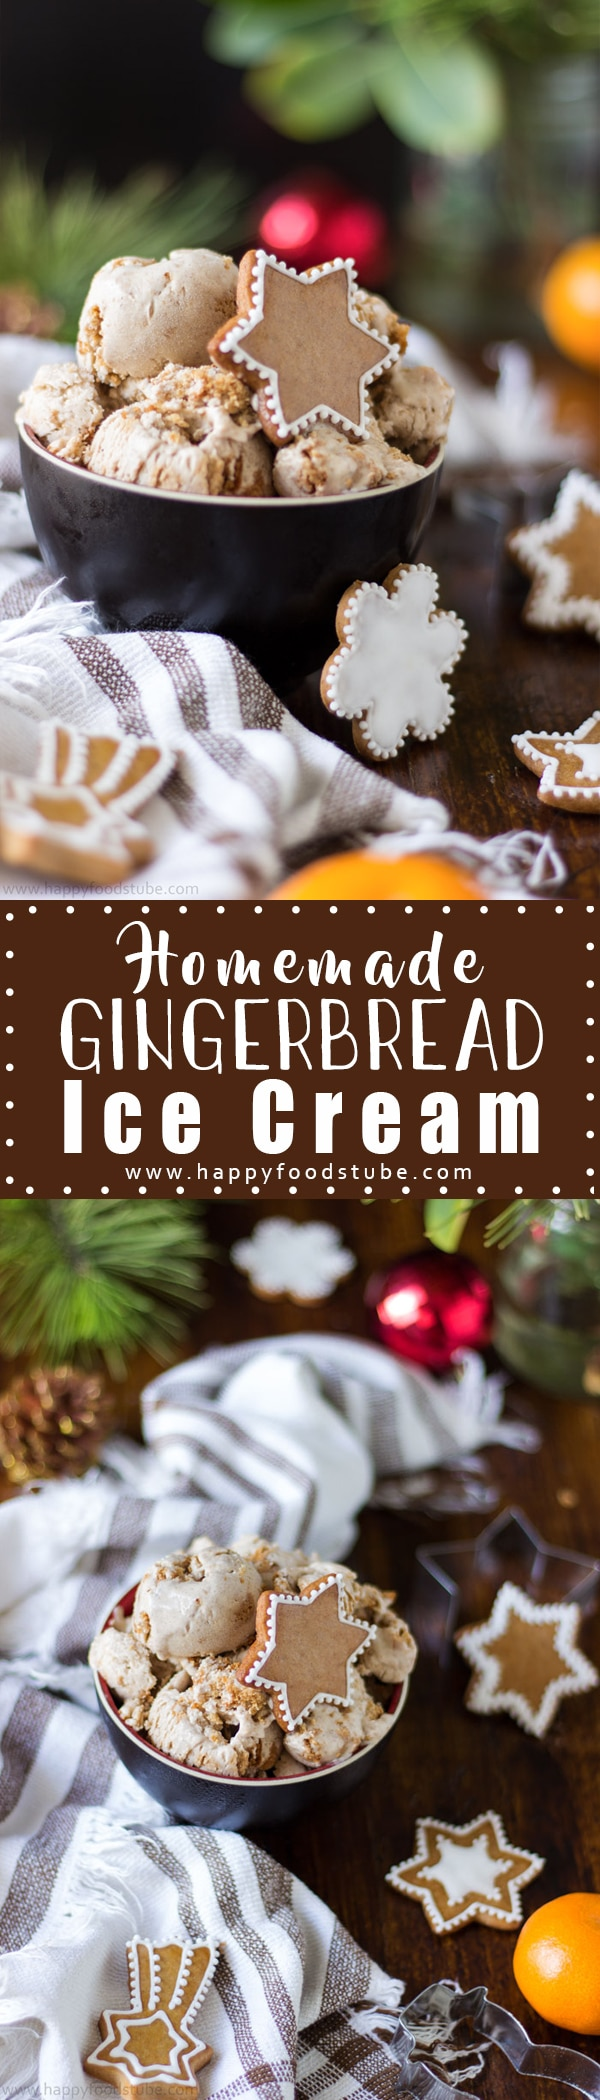 Planning on baking gingerbread cookies? Why not make gingerbread ice cream as well? It's a perfect Christmas treat with pieces of gingerbread cookies inside | happyfoodstube.com